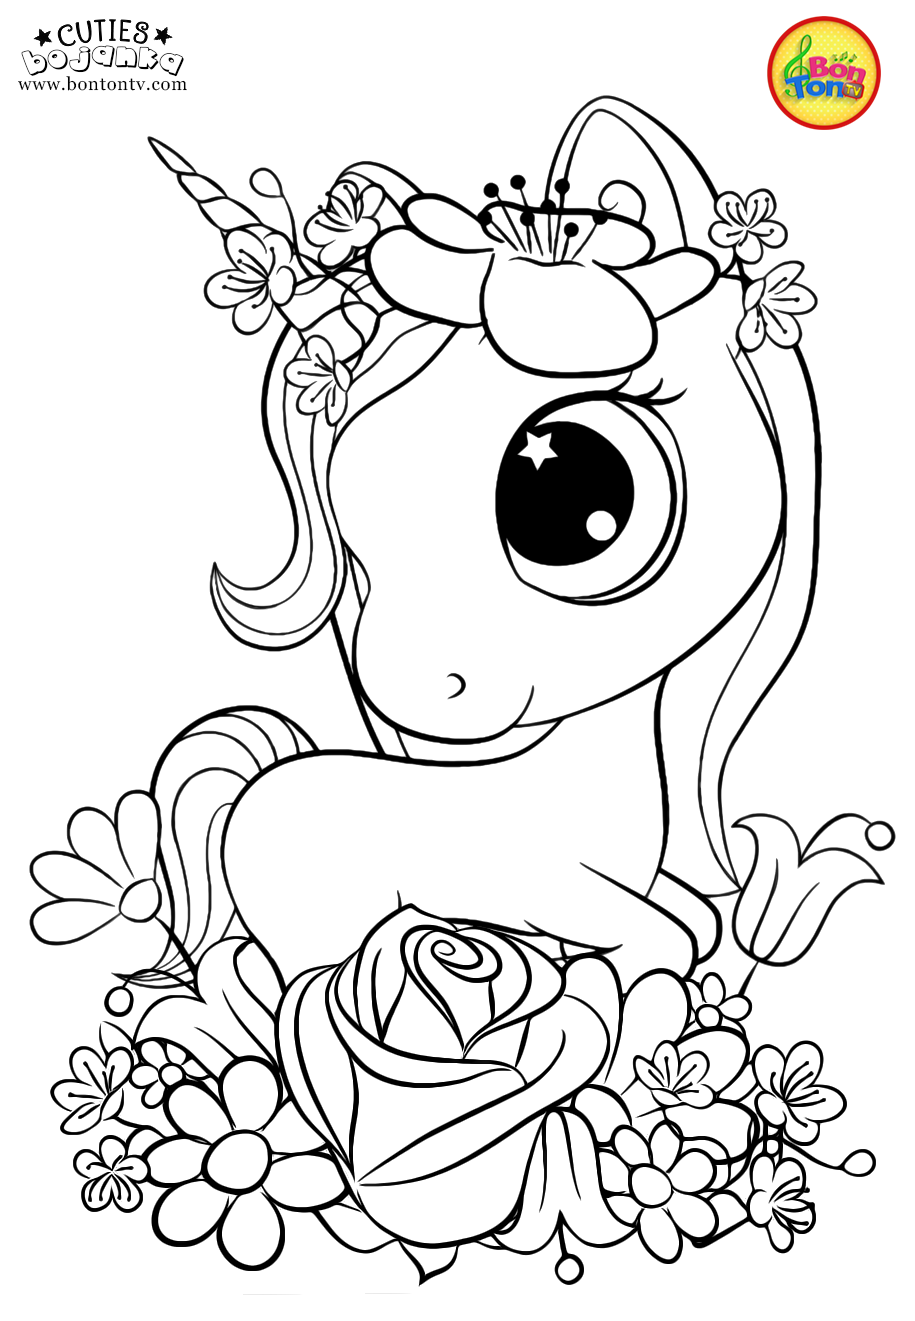 Cuties Coloring Pages For Kids Free Preschool Printables Slatkice Bojanke Cute Ani Unicorn Coloring Pages Mermaid Coloring Pages Free Kids Coloring Pages